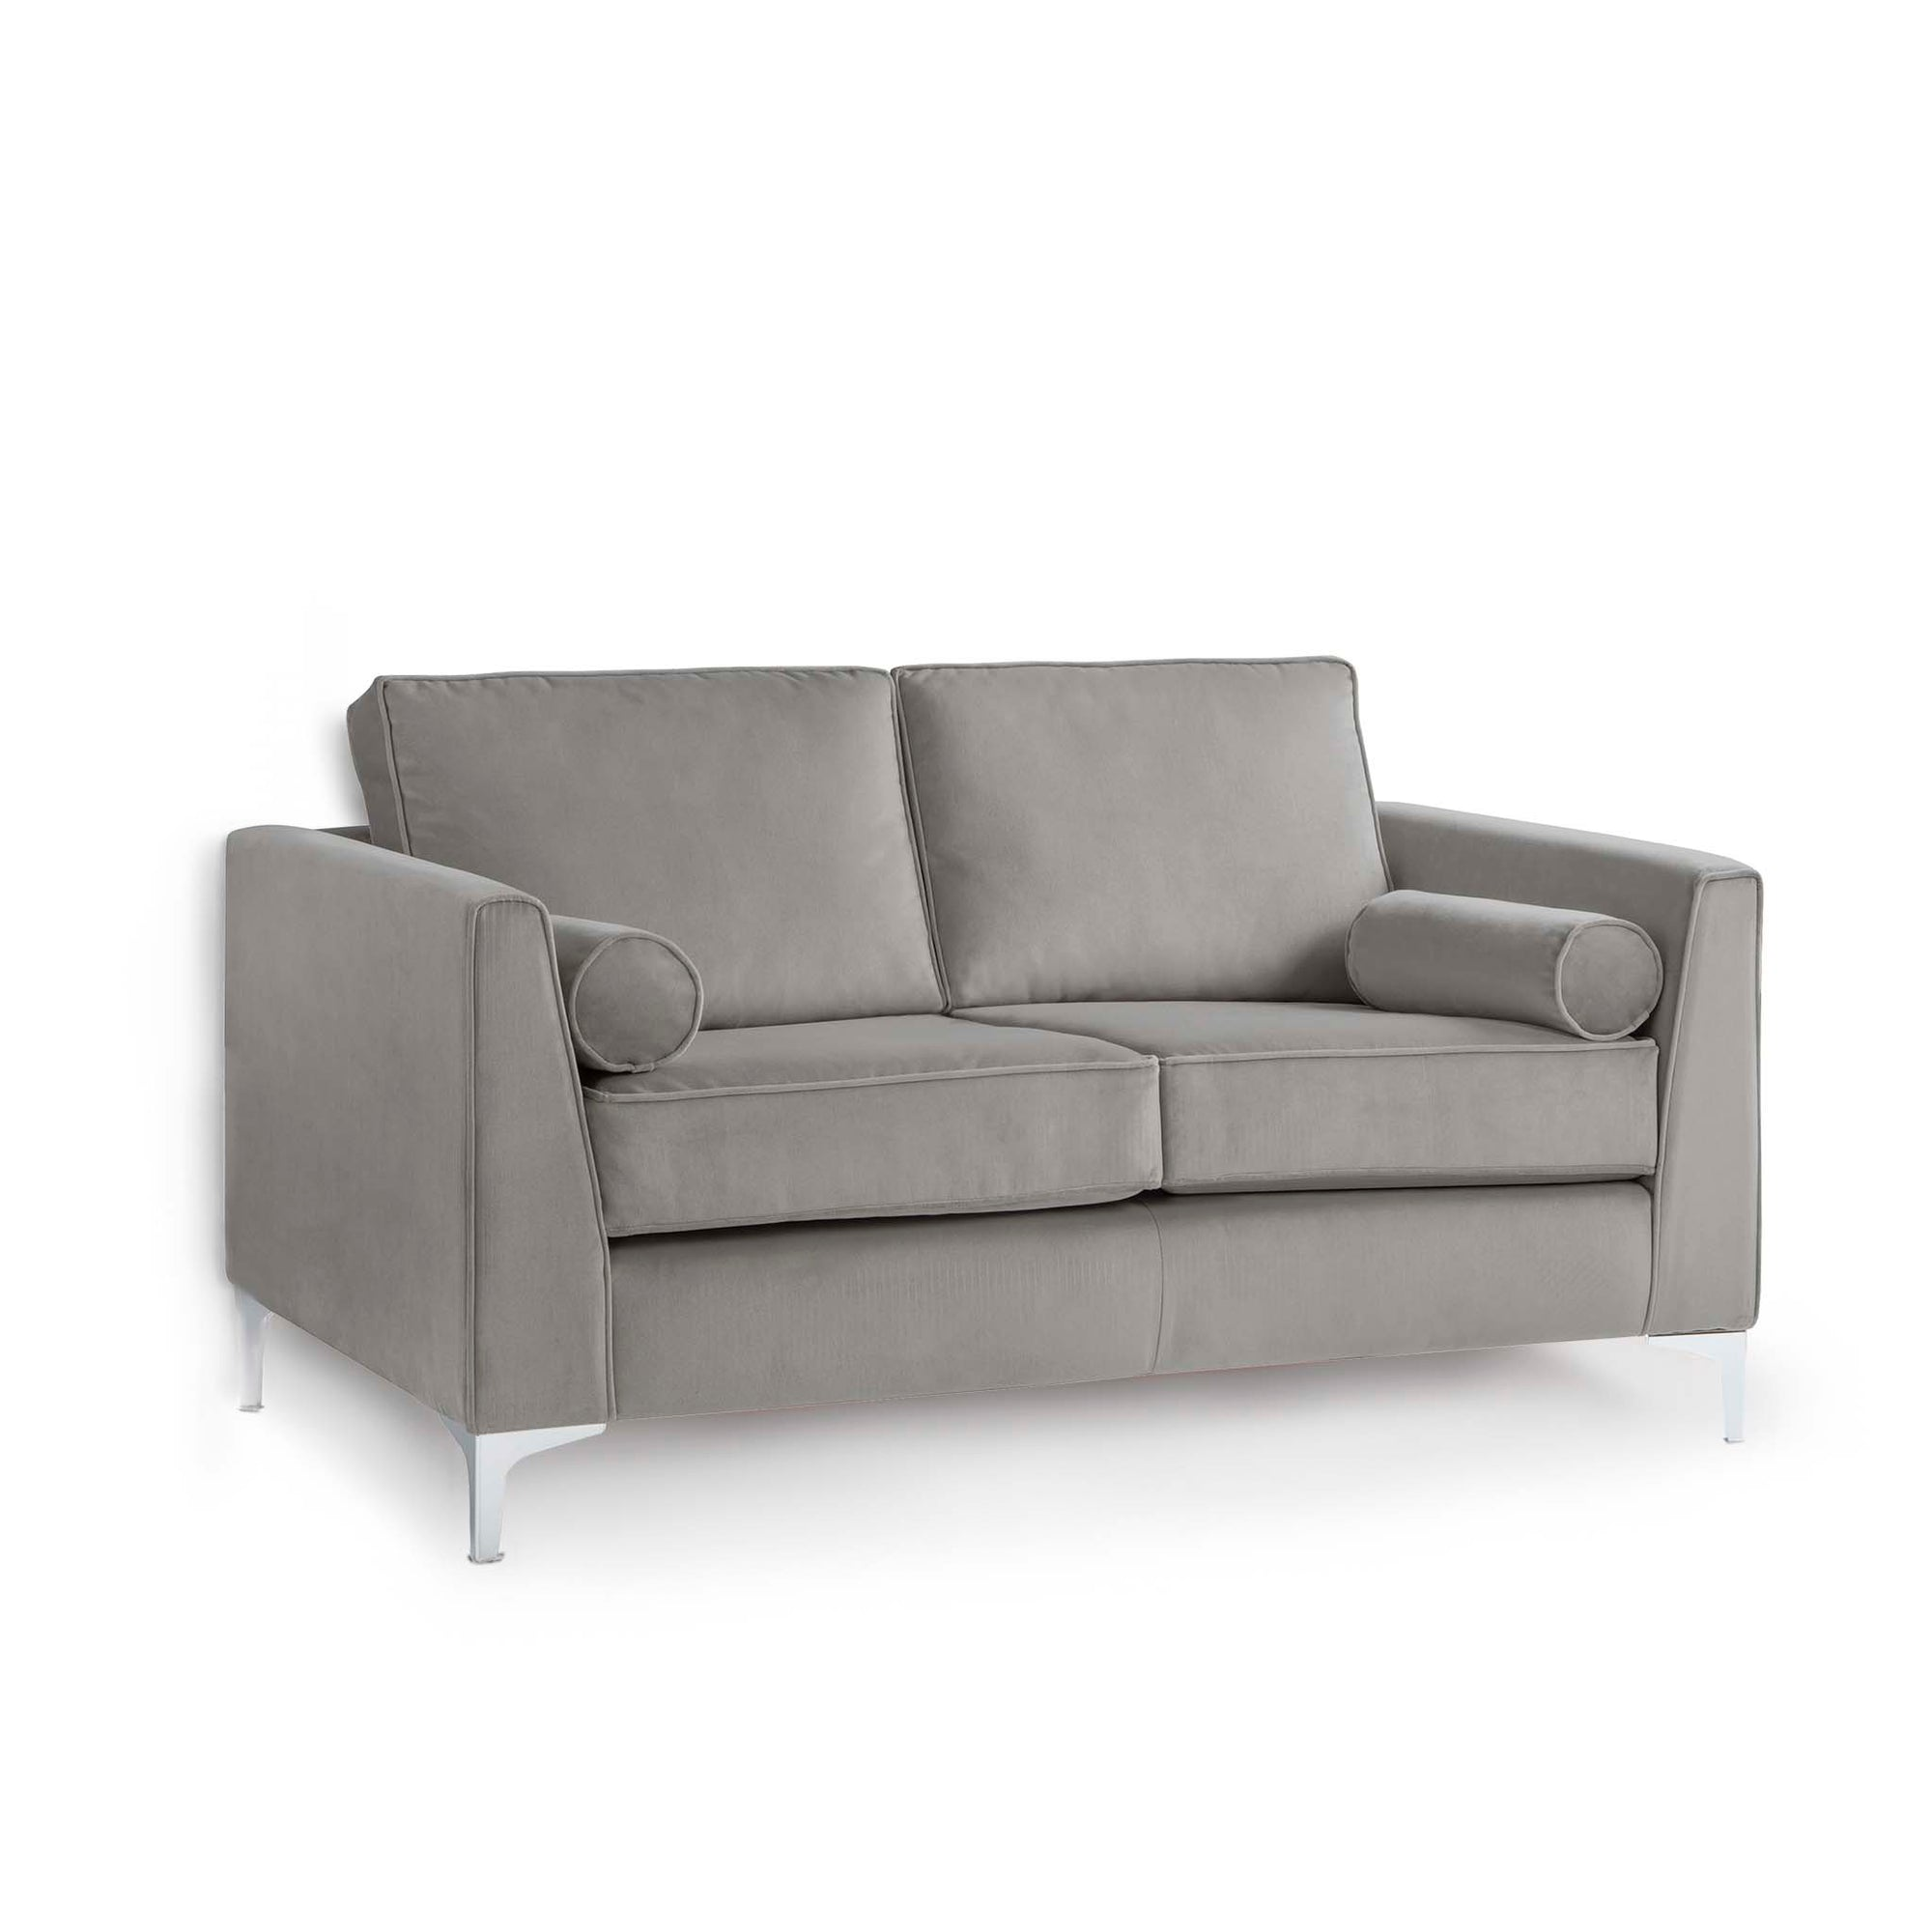 Ikon Grey 2 Seater Sofa by Roseland Furniture